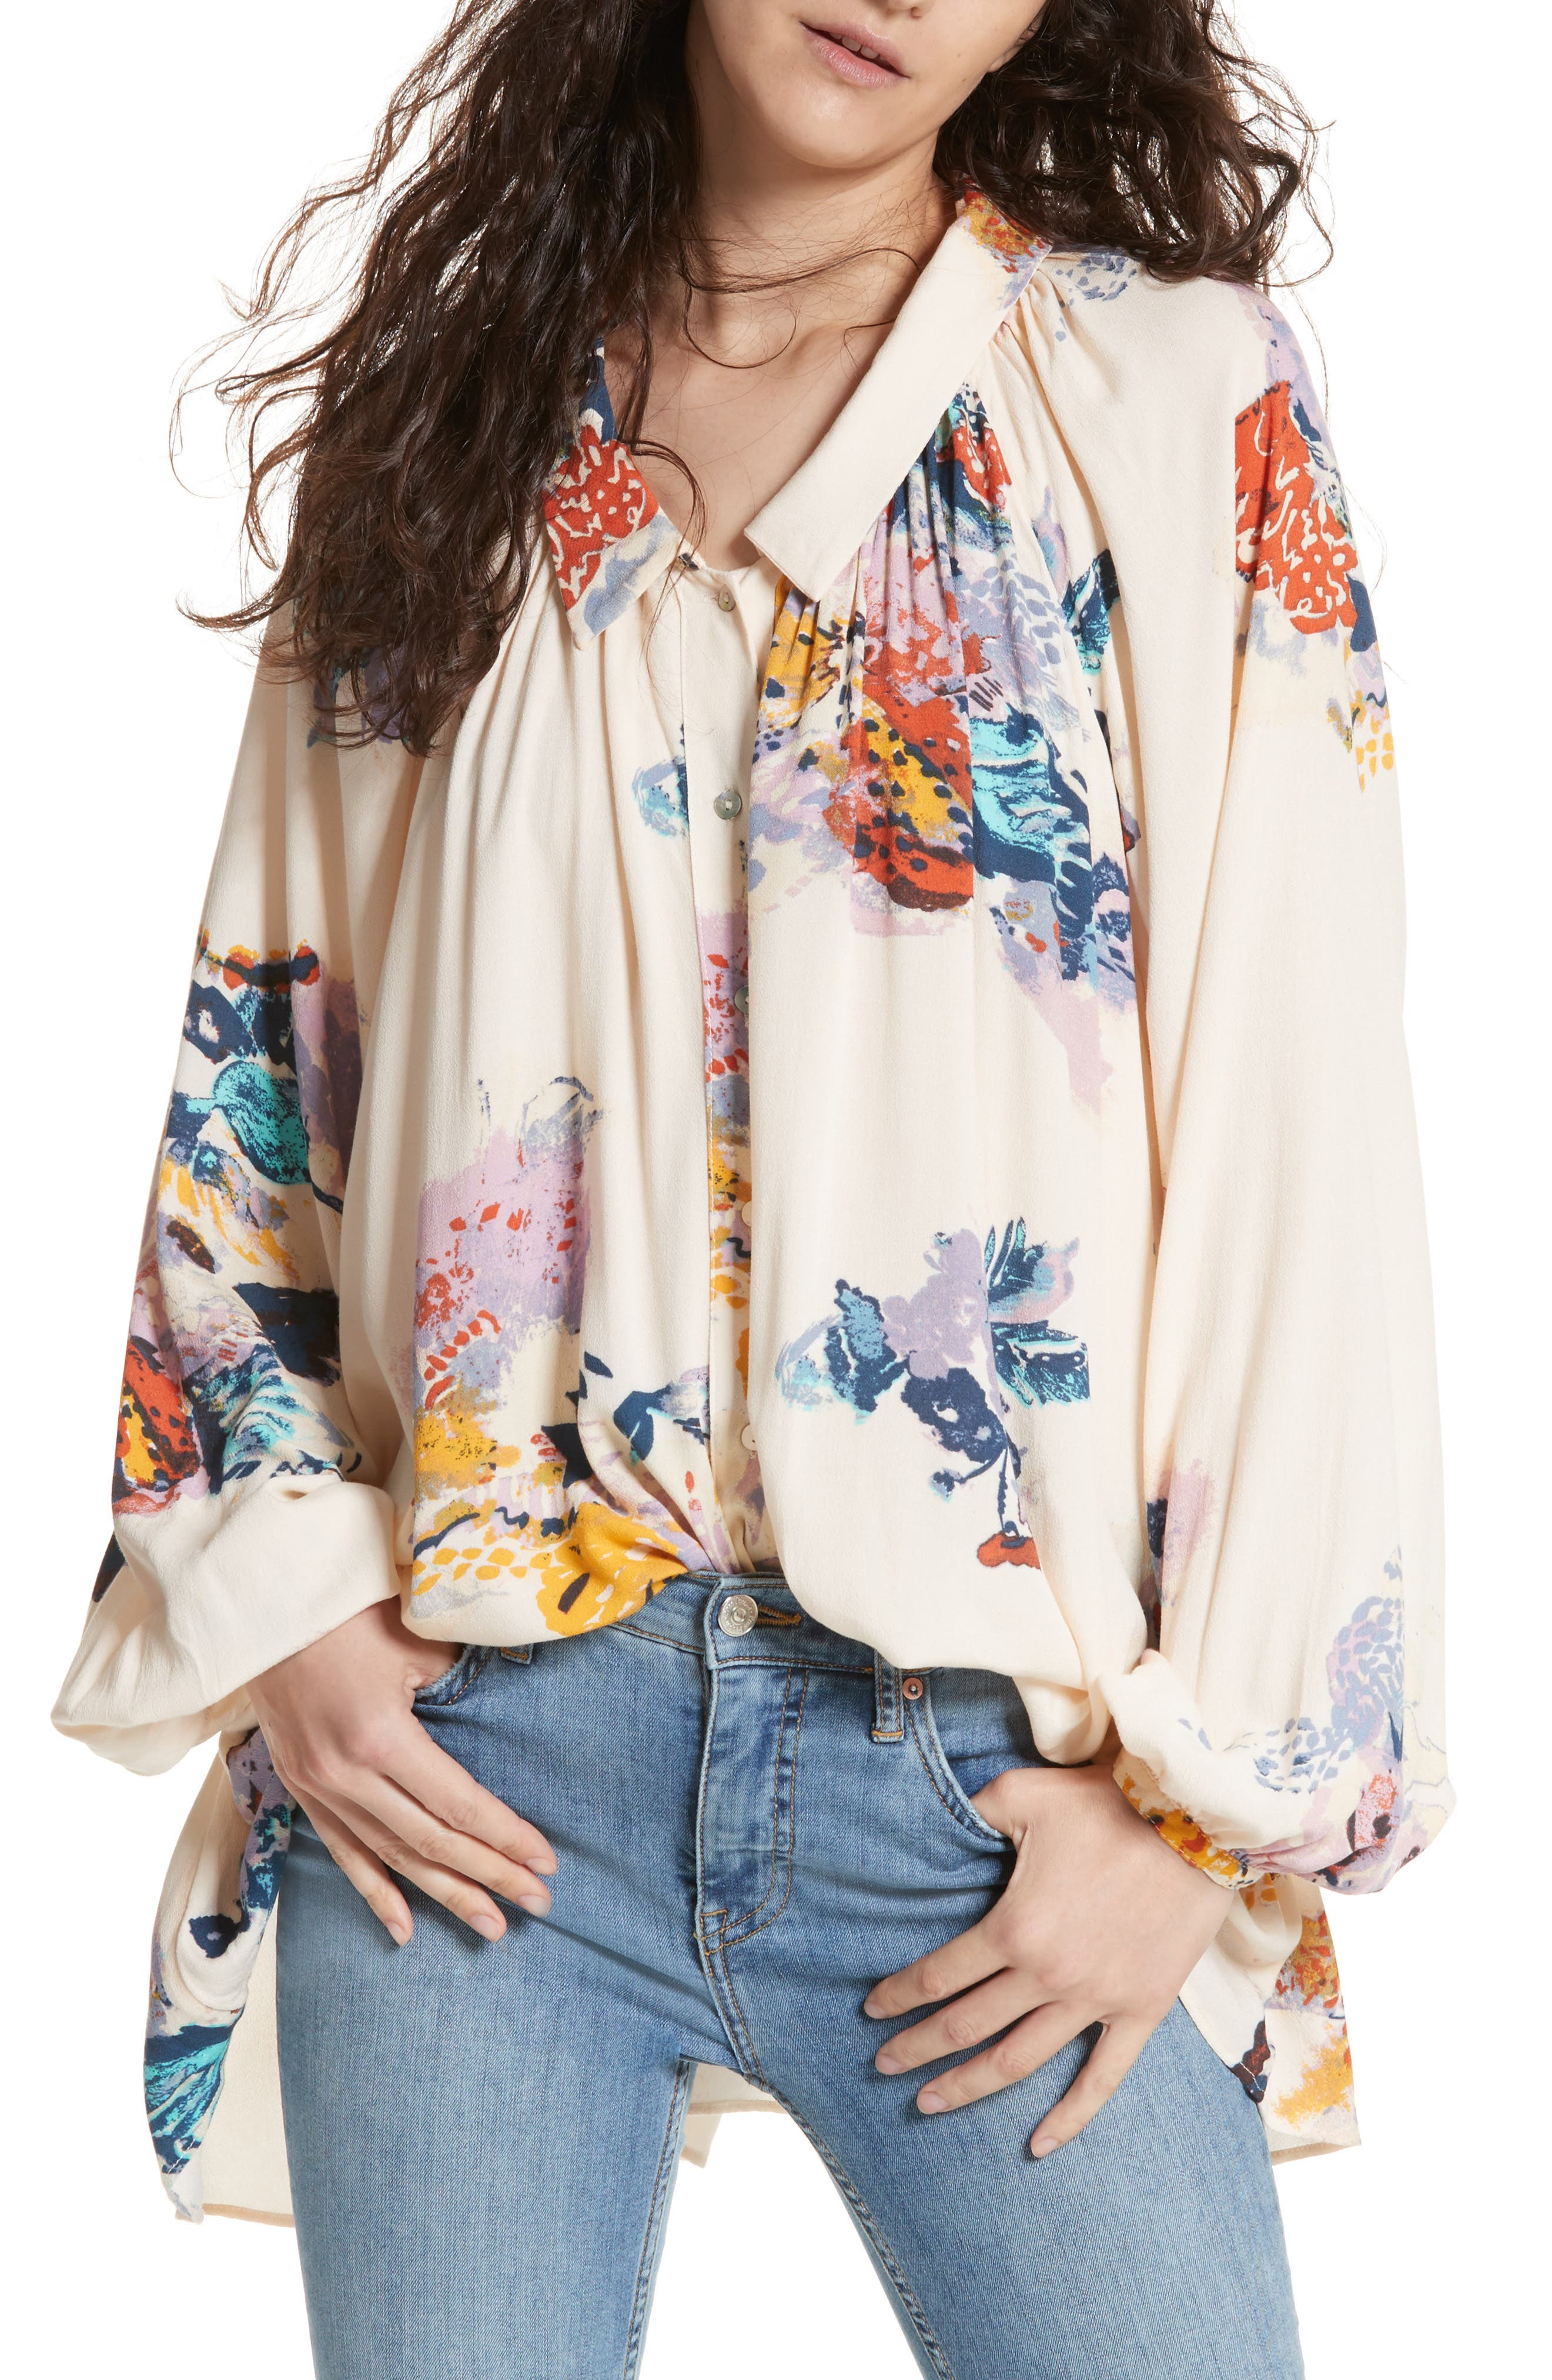 Meadow Lark Blouse,                             Main thumbnail 1, color,                             Cream